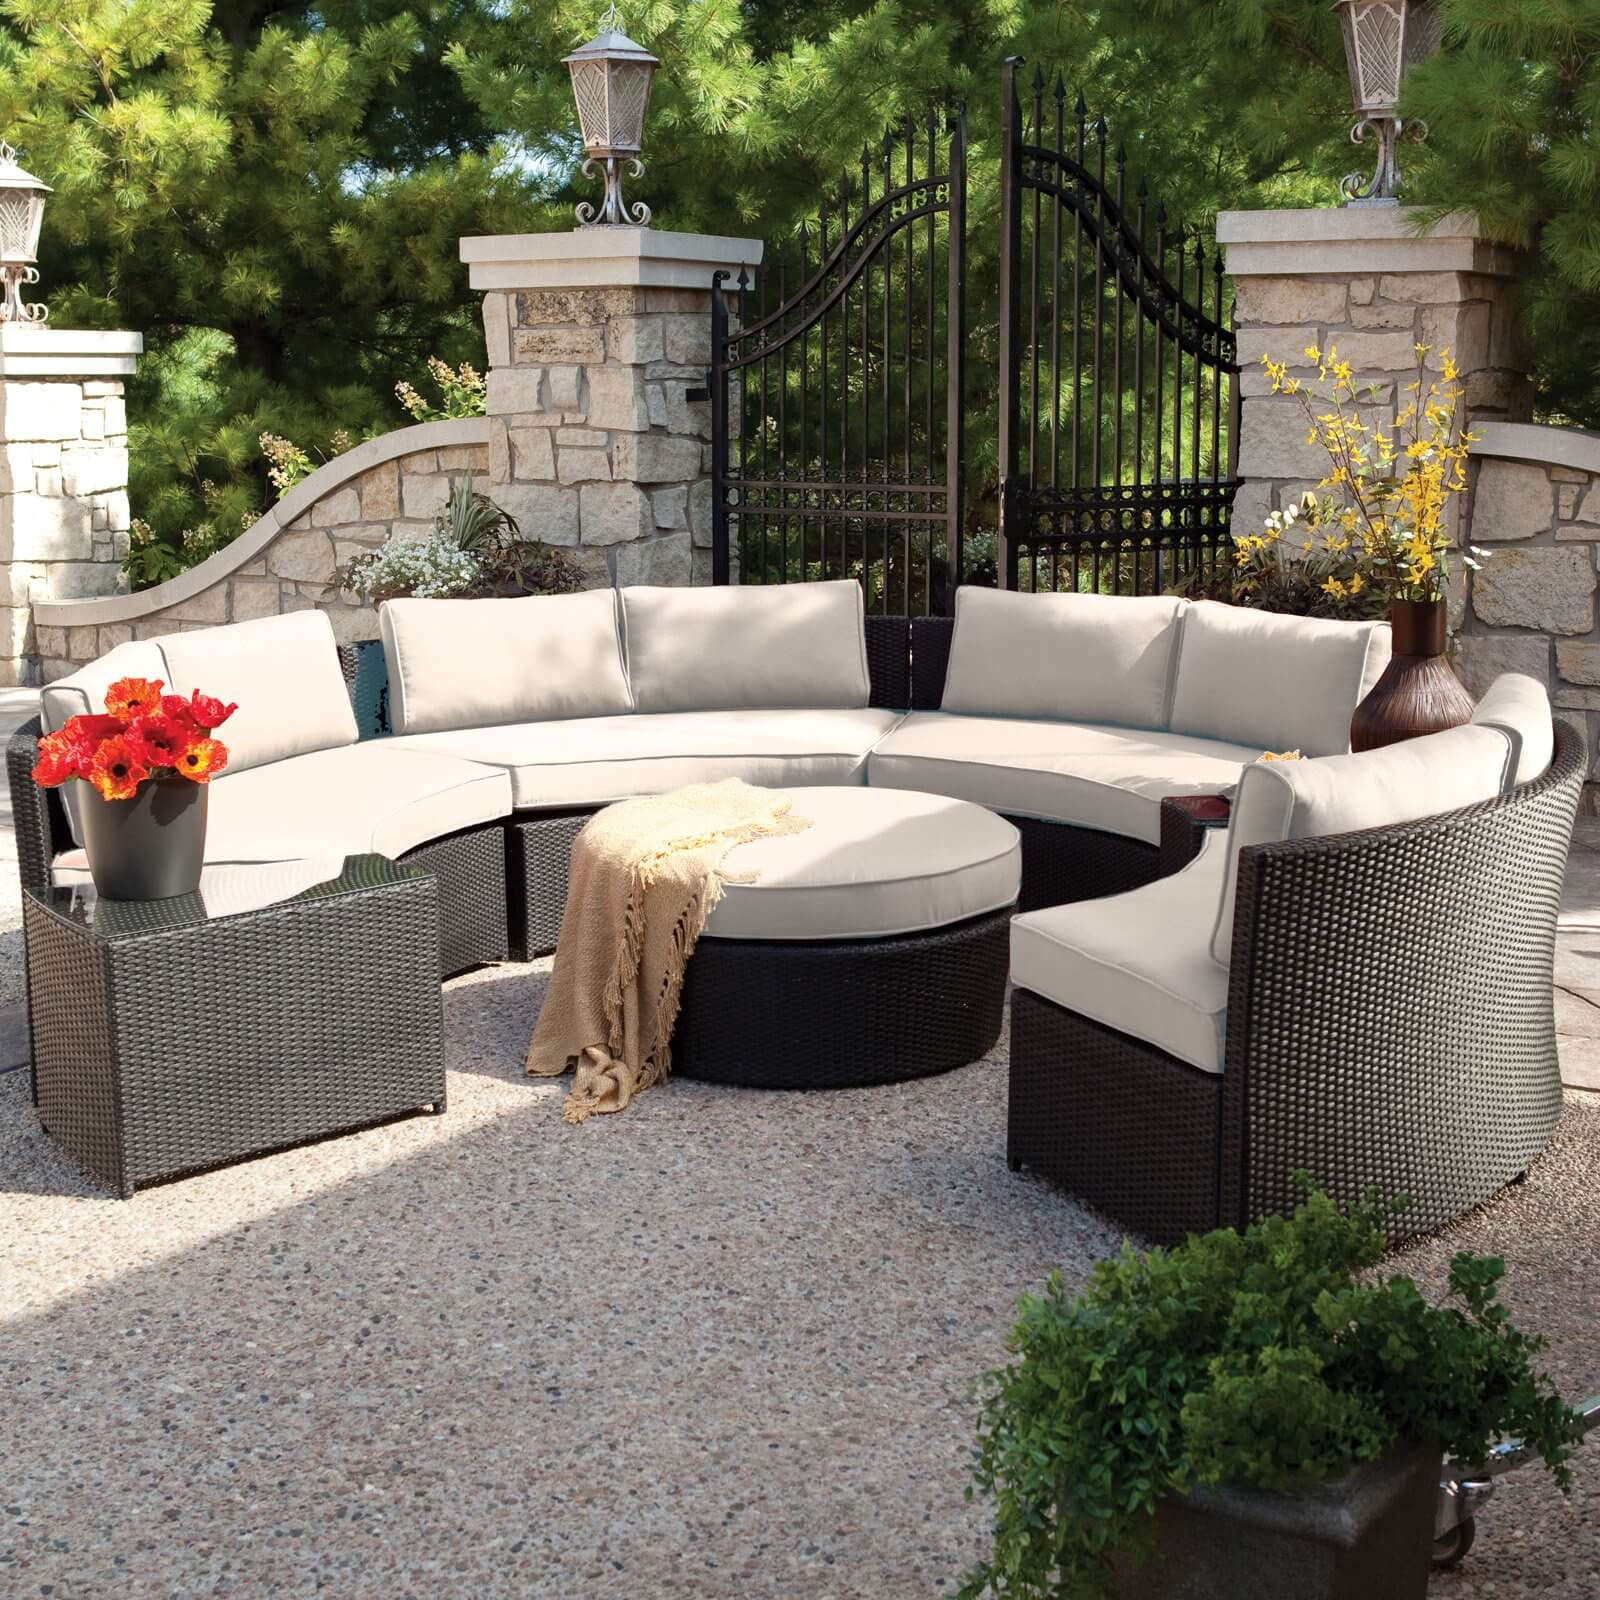 4 Awesome Modern Brown All-Weather Outdoor Patio Sectionals